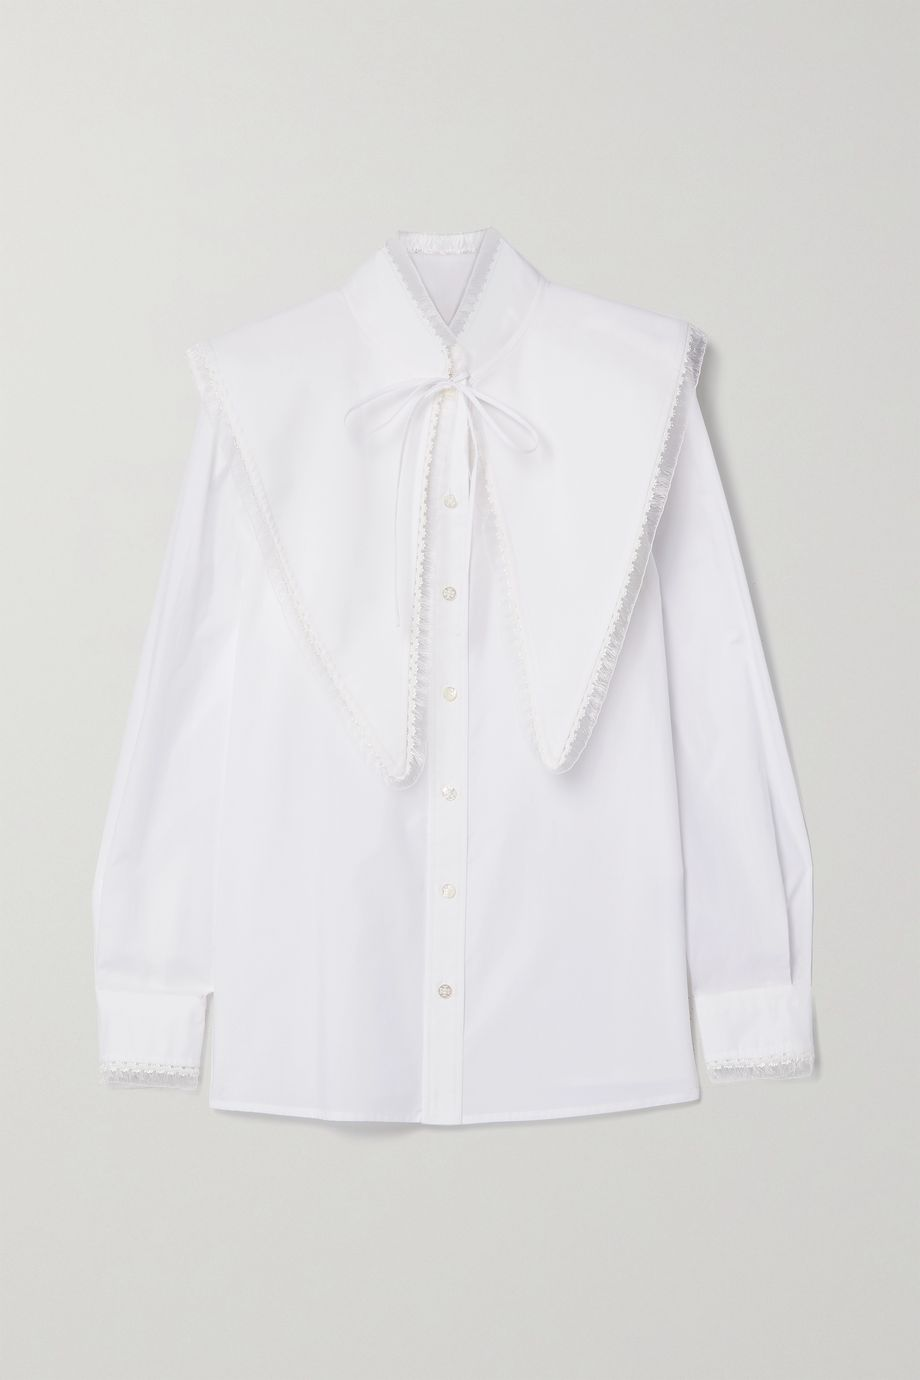 Tory Burch Convertible cotton-poplin shirt